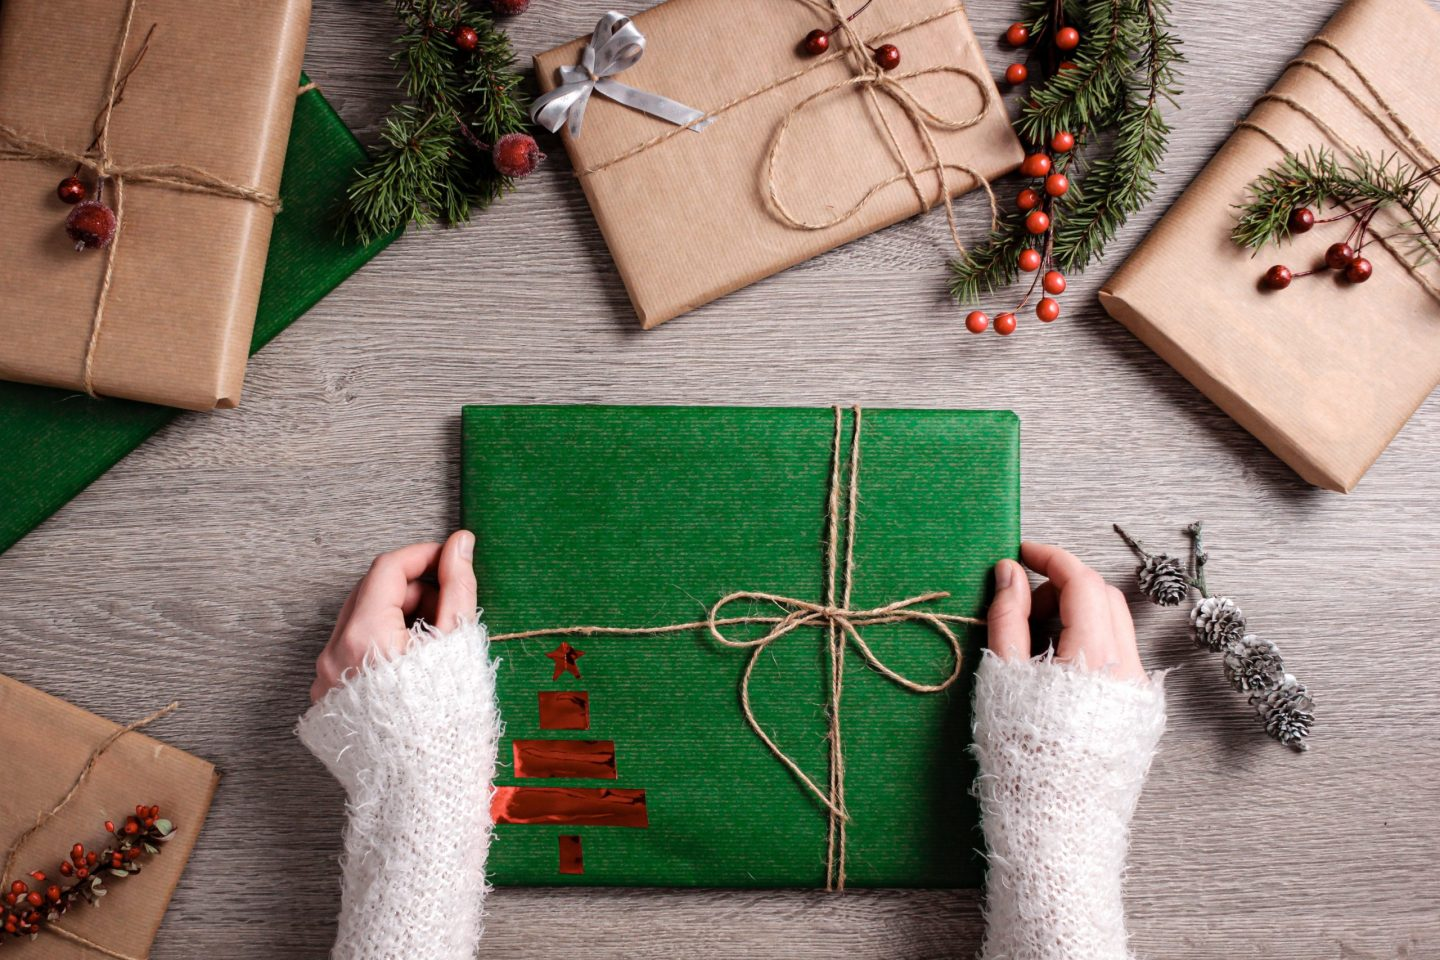 Reduce, reuse & recycle: Six tips for a more eco-friendly Christmas